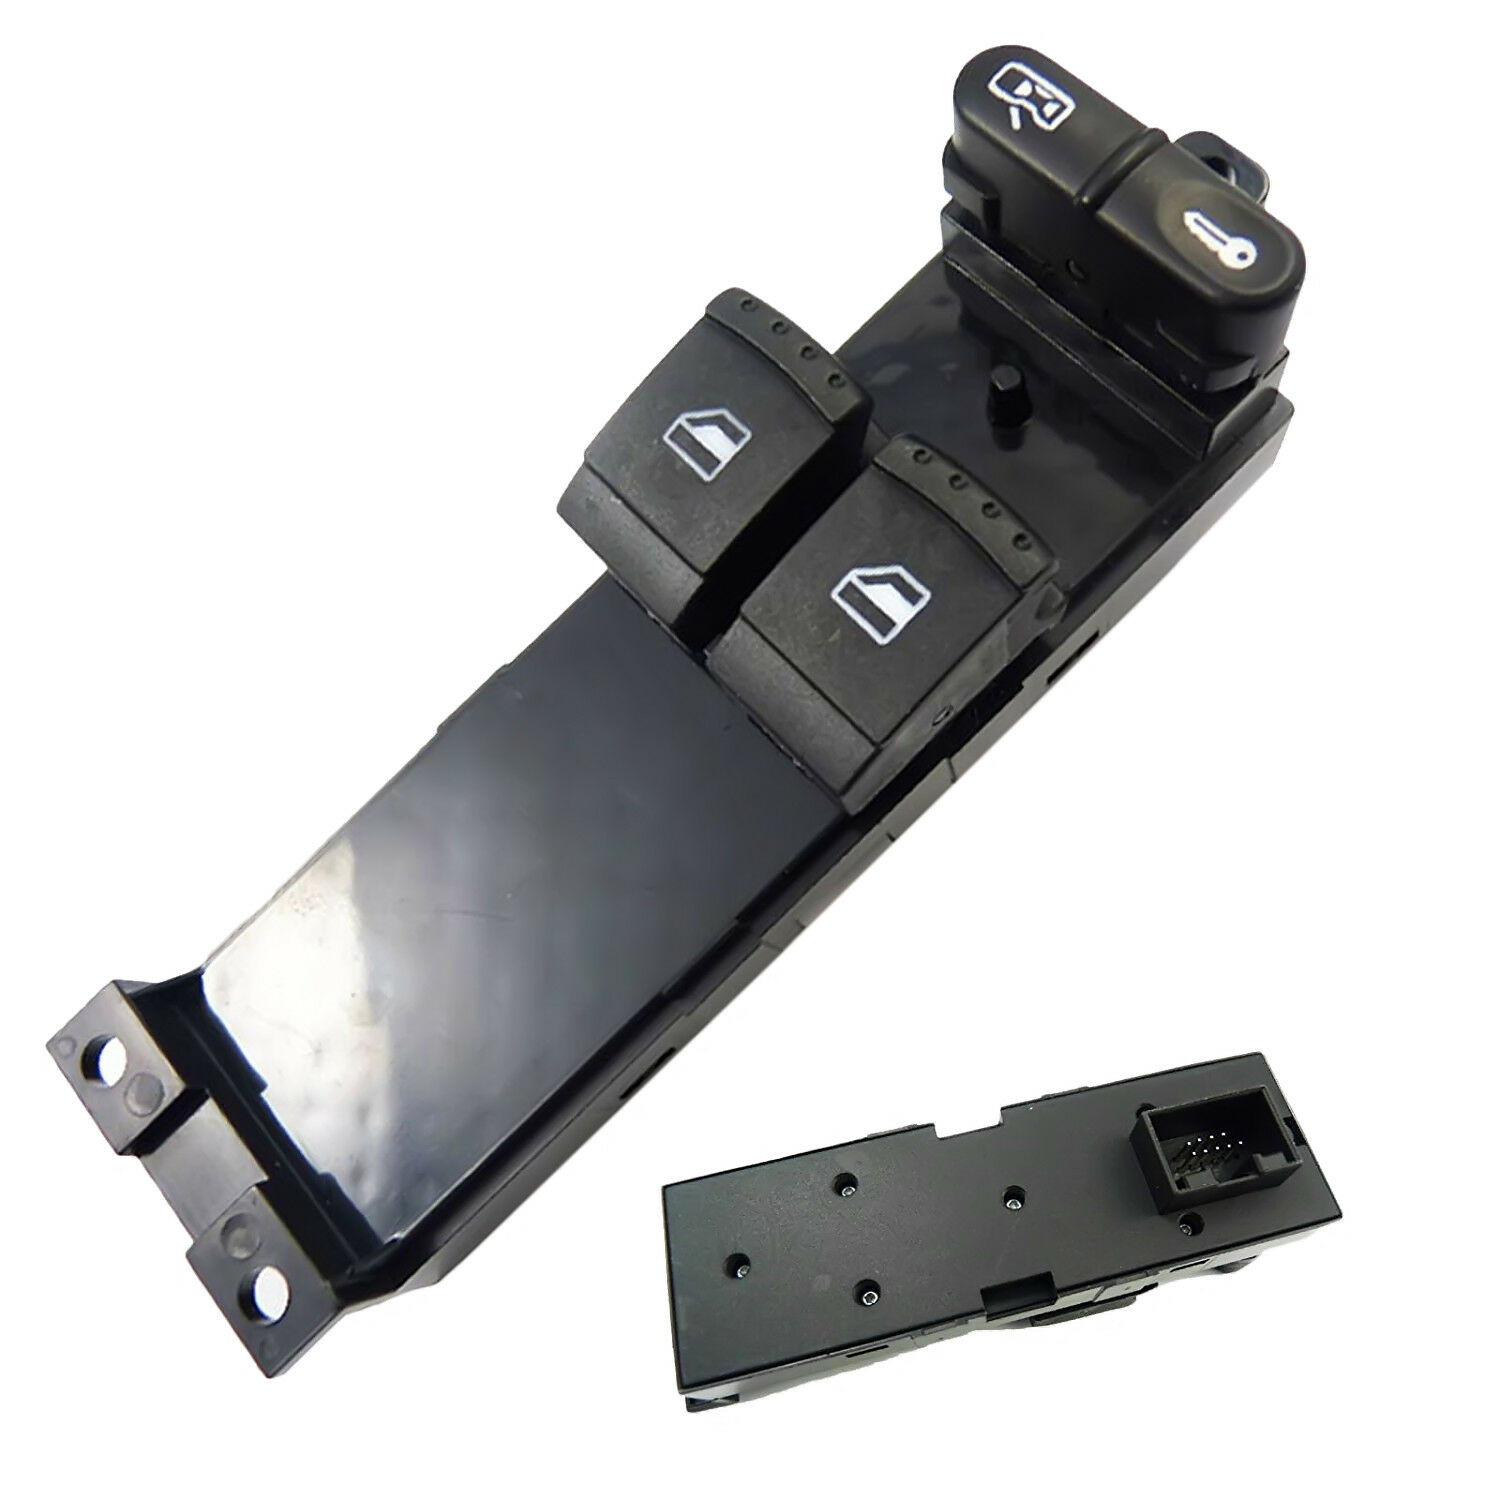 ELECTRIC POWER MASTER WINDOW CONTROL SWITCH PANEL FOR SEAT LEON 1999-2005